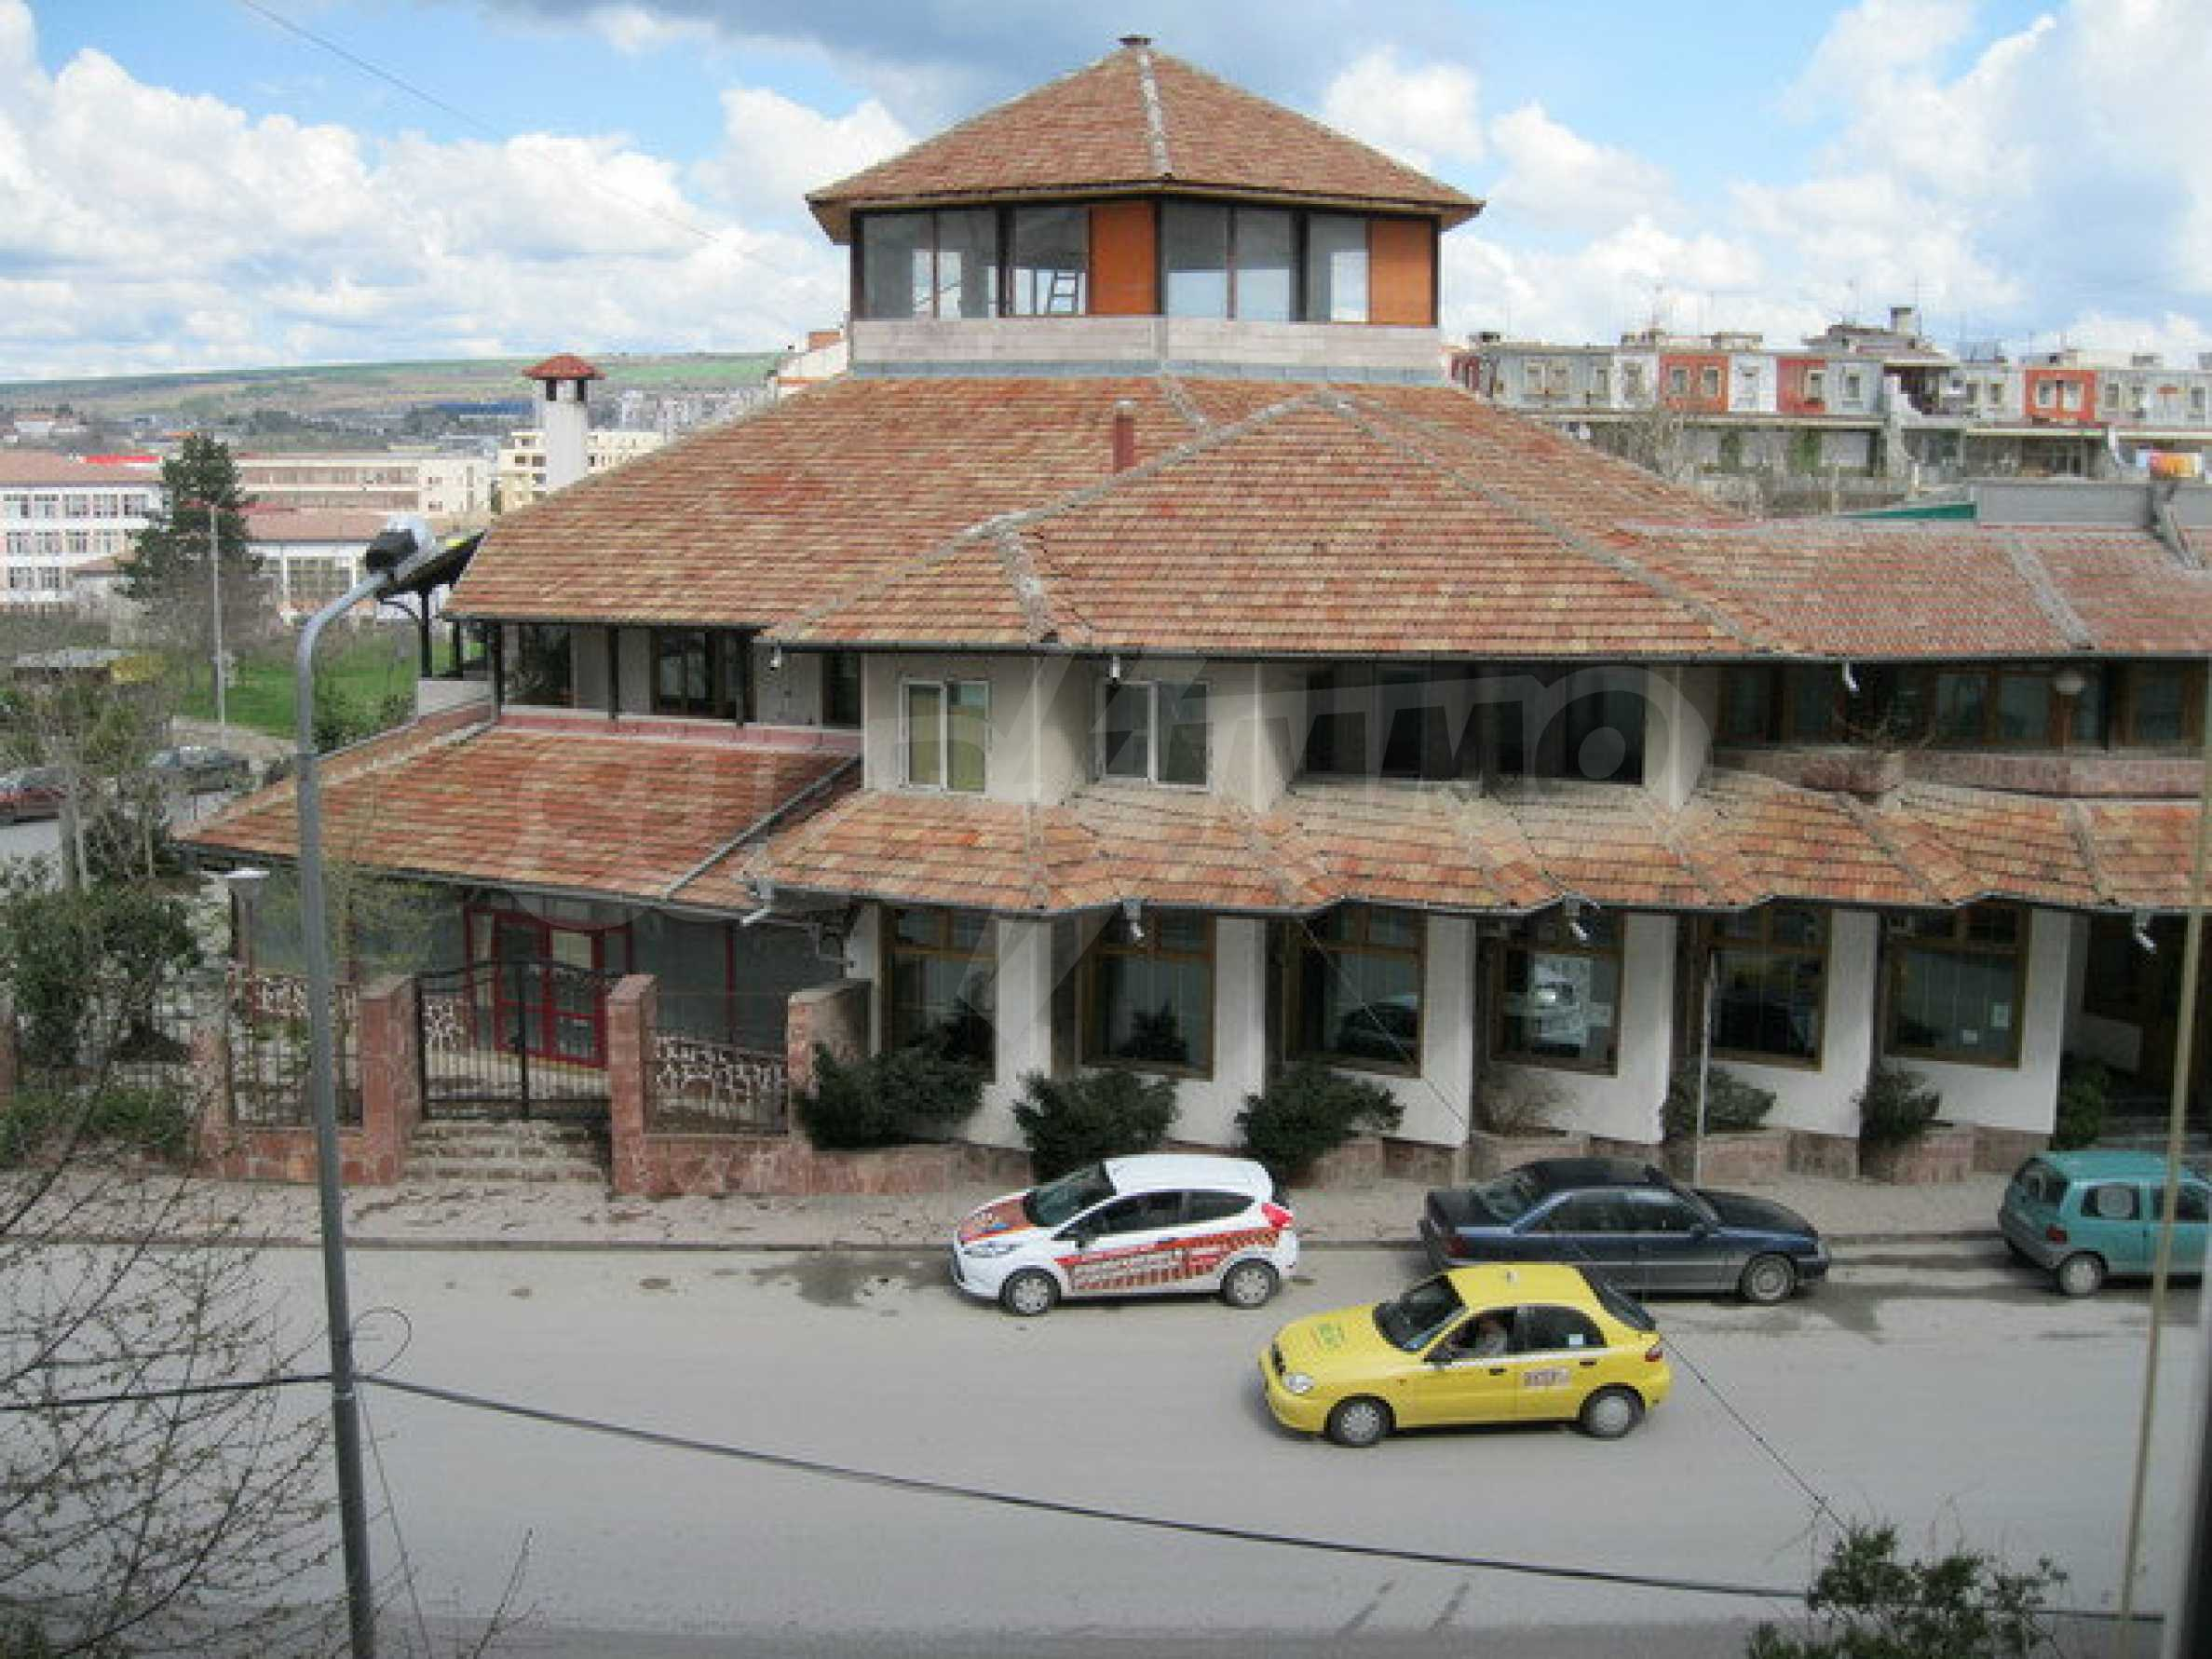 Commercial property on 3 levels for sale in Veliko Tarnovo  5